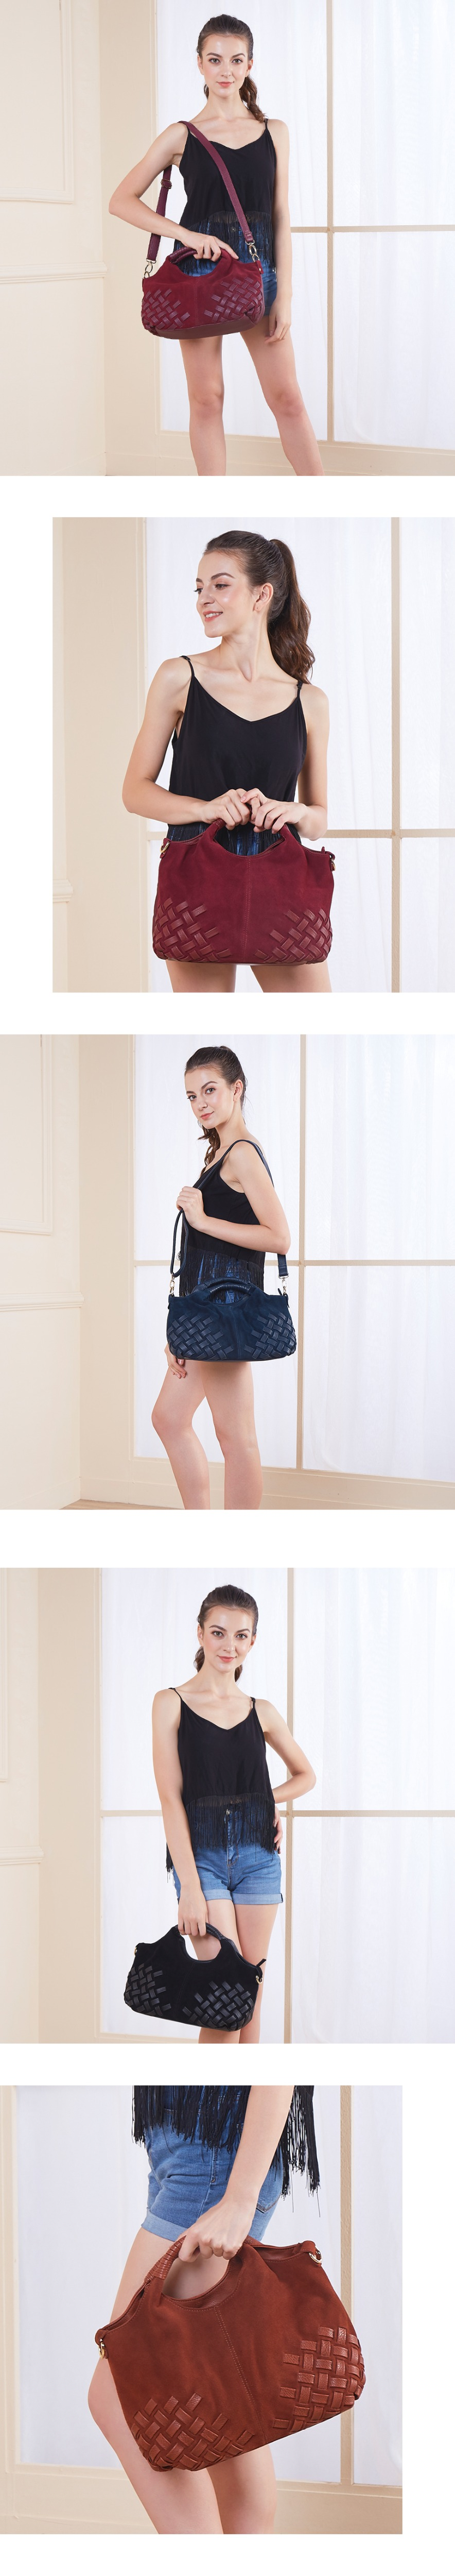 Aliexpress.com   Buy Latest Women Weave Suede Split Leather Handbag ... 507c6a95e6fc1